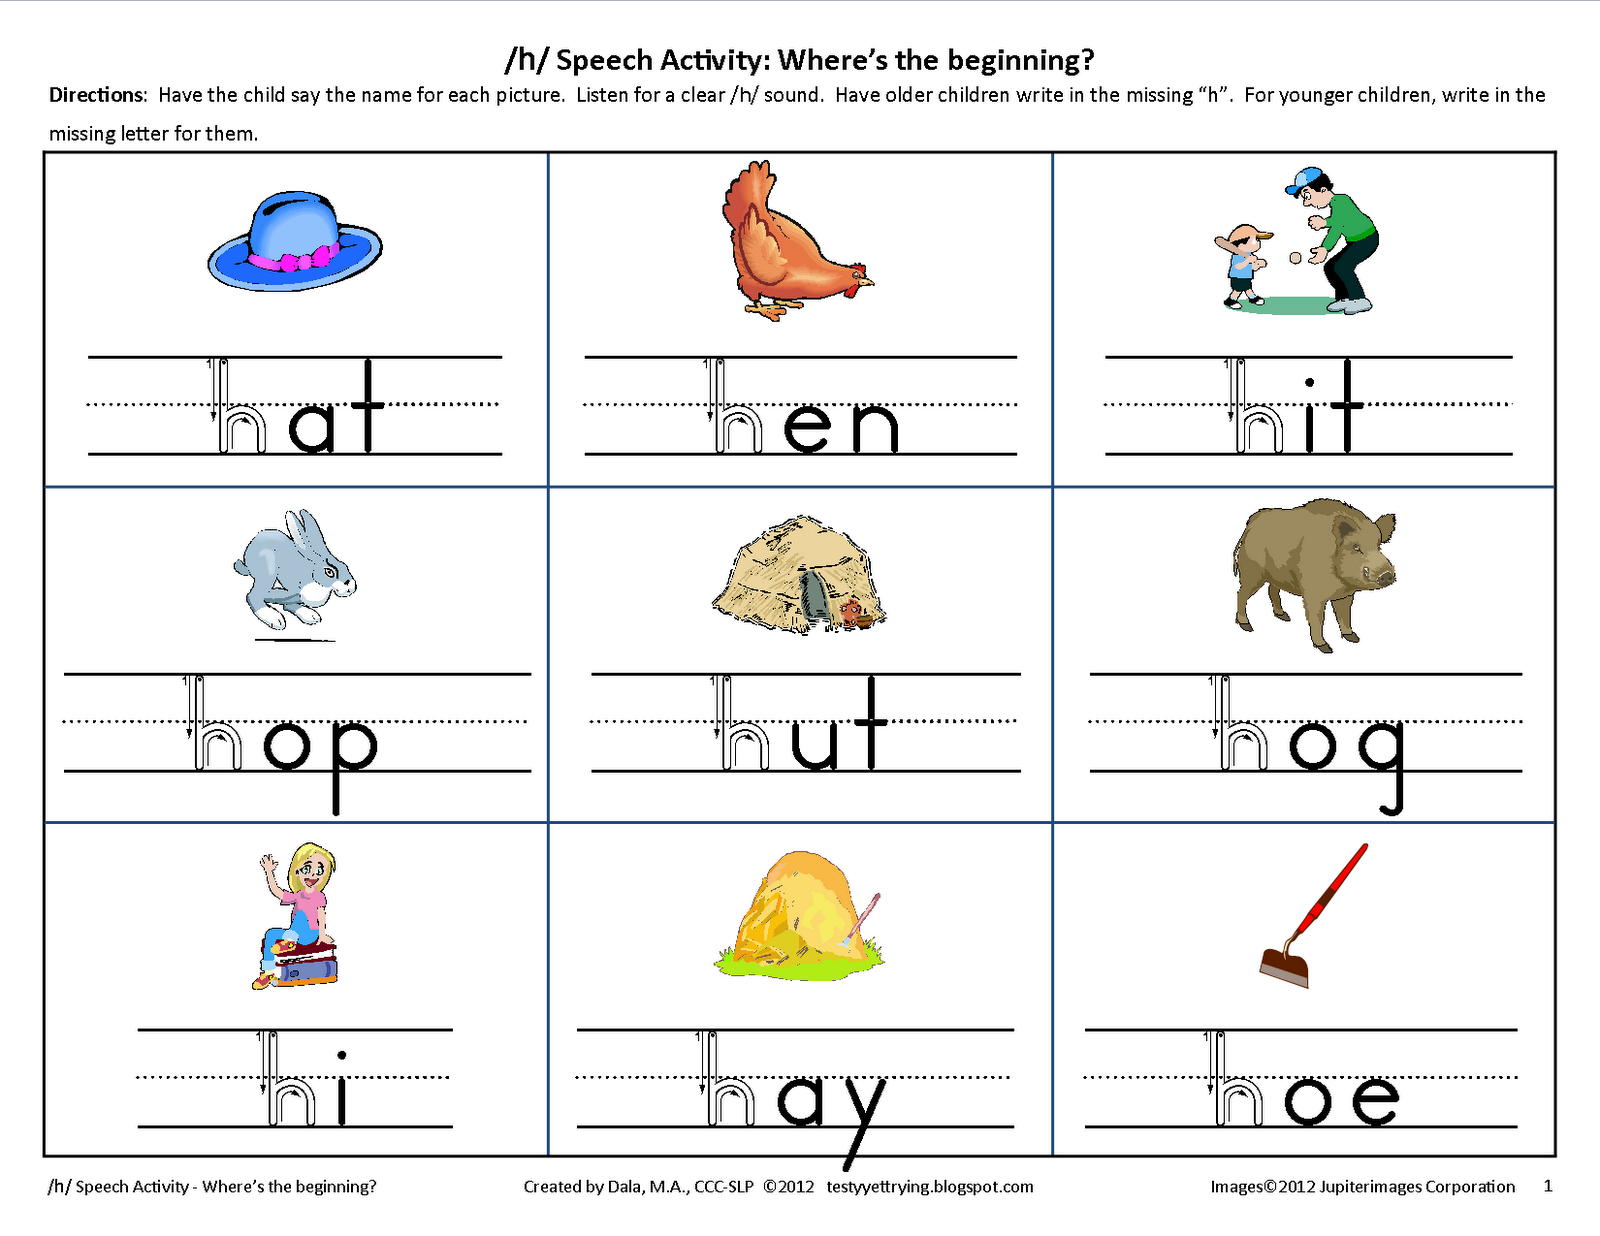 Proatmealus  Wonderful Testy Yet Trying Initial H Speech Worksheet With Outstanding Make Classroom Teachers Happy Reinforce Phonics And Handwriting And Practice Speech All At The Same Time With Adorable Colors Worksheets For Preschoolers Free Printables Also Load Calculation Worksheet In Addition Road Signs Worksheet And Scatter Plot And Line Of Best Fit Worksheets As Well As Free Homeschooling Worksheets Additionally Future Tense Worksheet From Testyyettryingblogspotcom With Proatmealus  Outstanding Testy Yet Trying Initial H Speech Worksheet With Adorable Make Classroom Teachers Happy Reinforce Phonics And Handwriting And Practice Speech All At The Same Time And Wonderful Colors Worksheets For Preschoolers Free Printables Also Load Calculation Worksheet In Addition Road Signs Worksheet From Testyyettryingblogspotcom